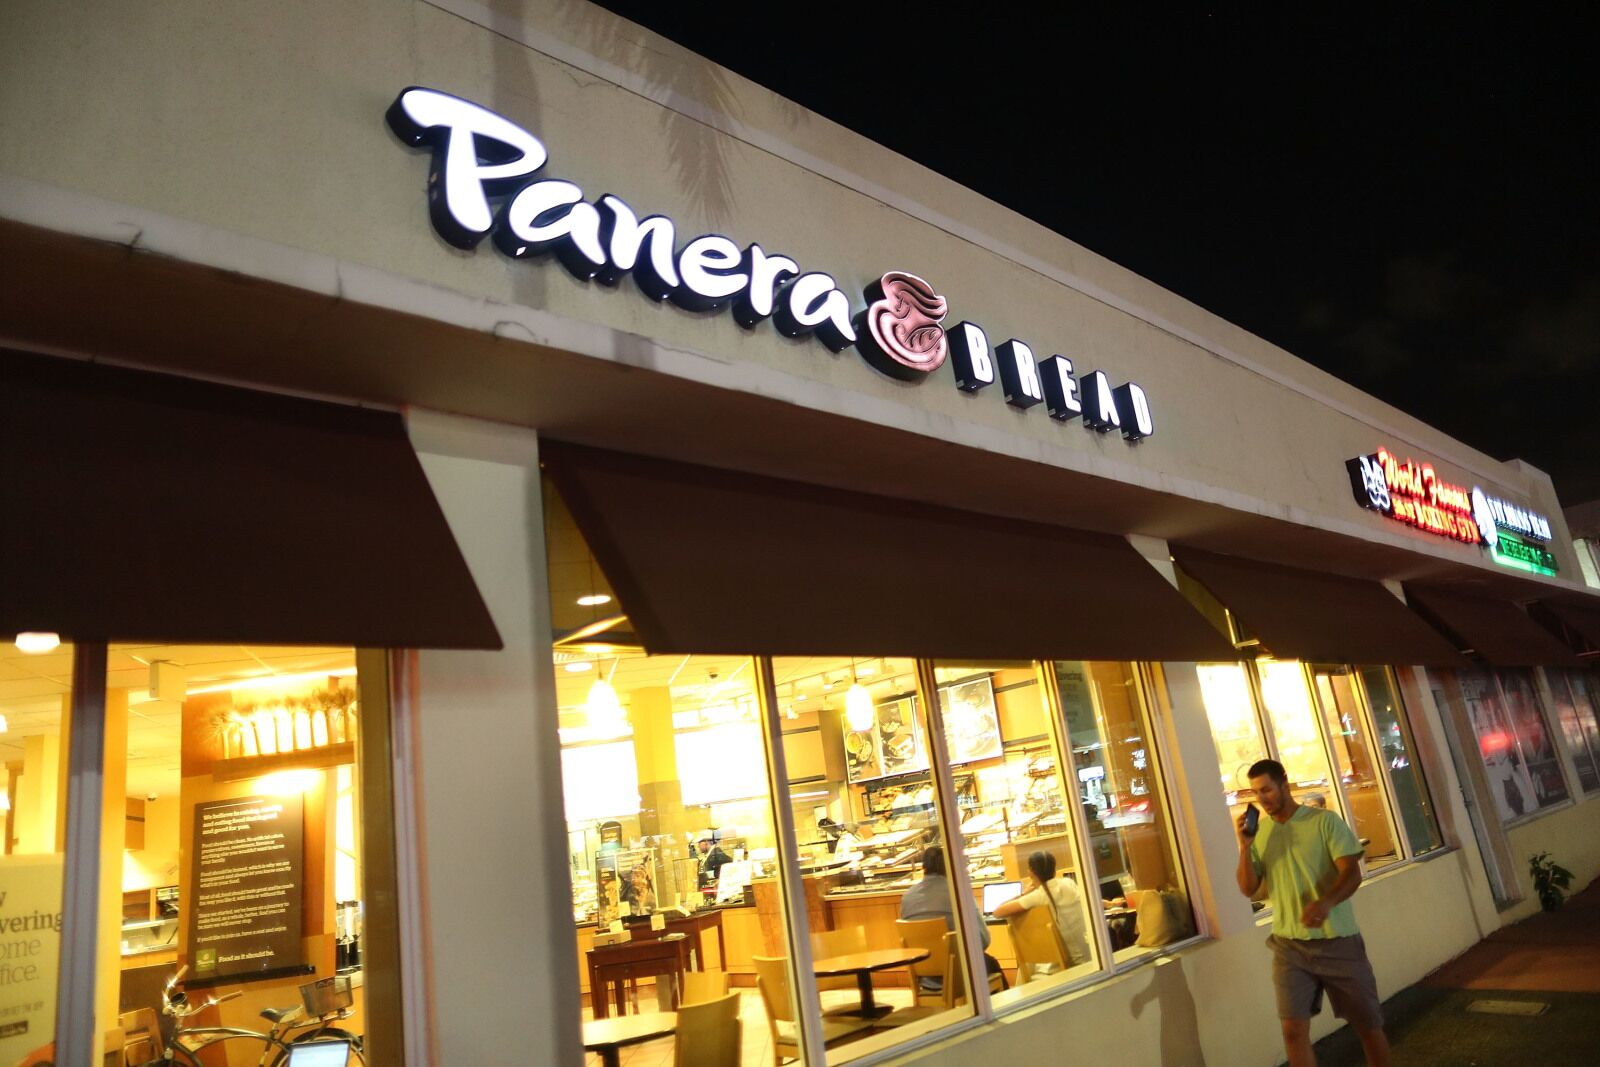 Panera Bread employee crises: How can it be fixed?